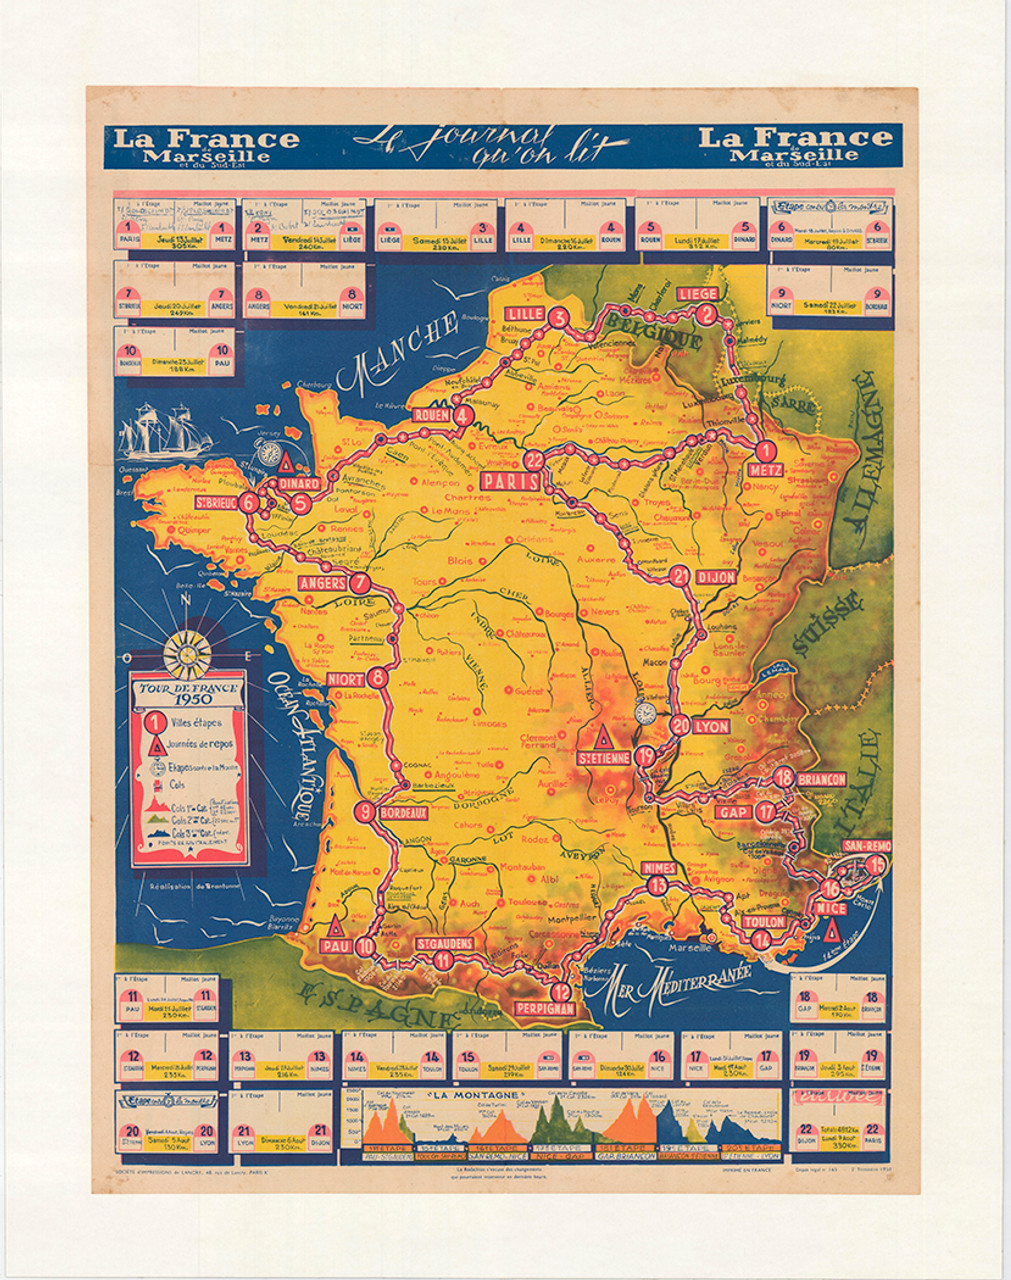 Original Vintage 1950 Tour de France Vintage La France Map Poster